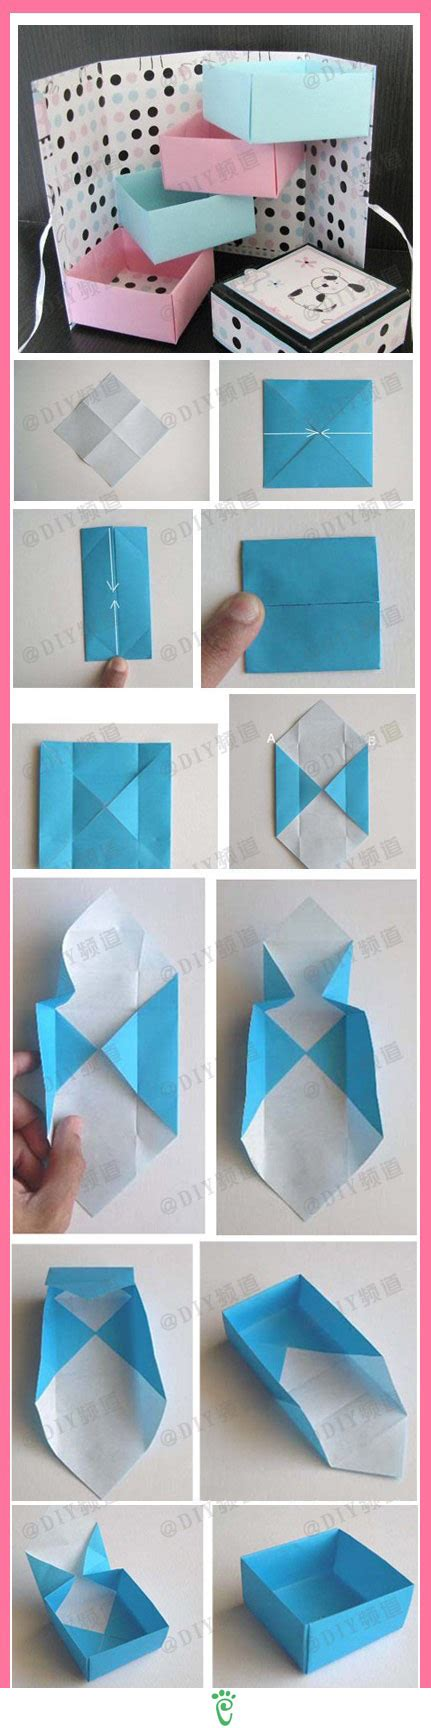 Diy Paper Box Pinterest